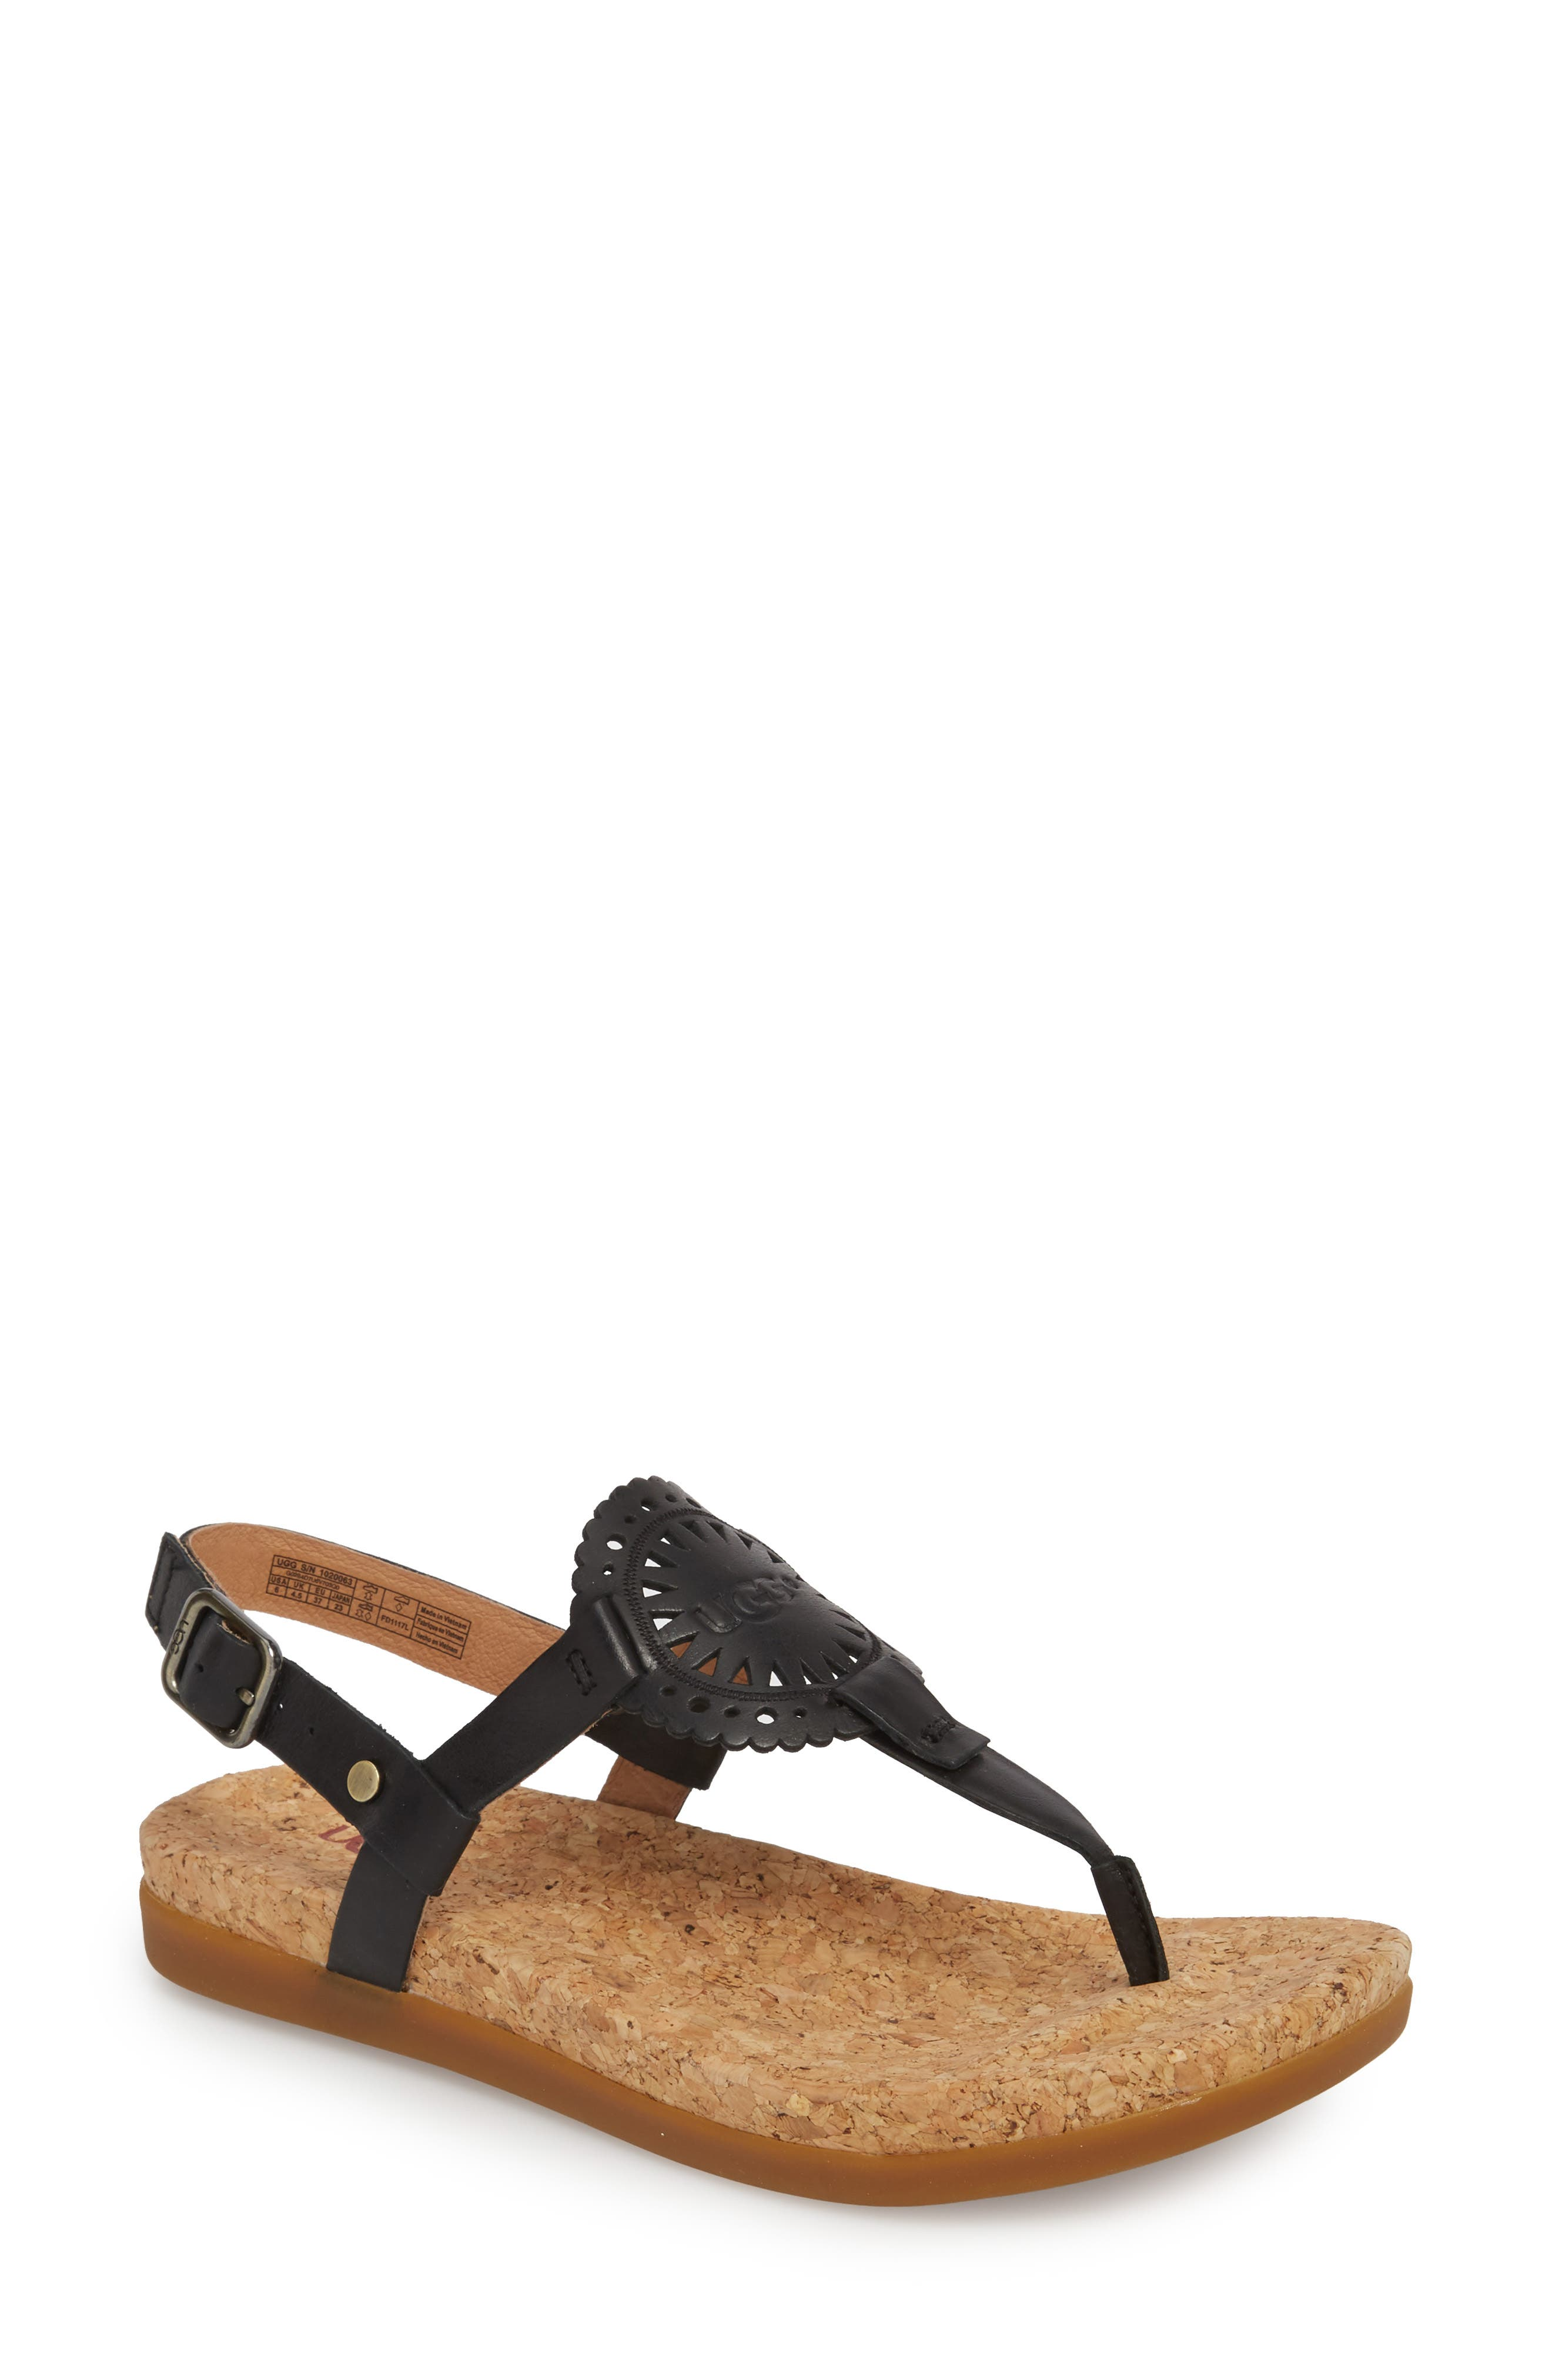 Ayden II T-Strap Sandal,                         Main,                         color, BLACK LEATHER